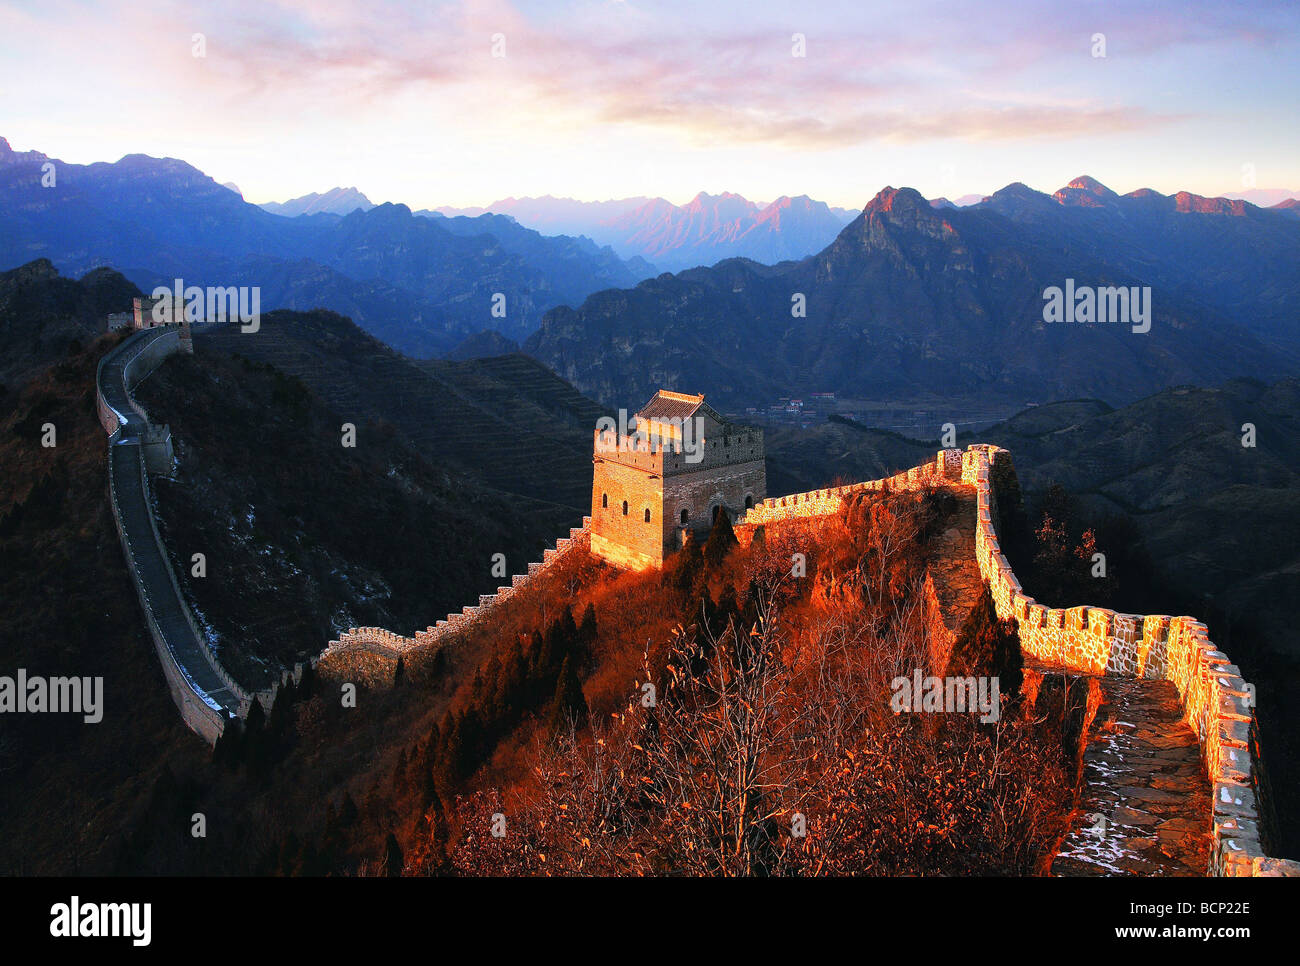 Huangyaguan Great Wall winding through the mountain, Ji County, Tianjin, China - Stock Image